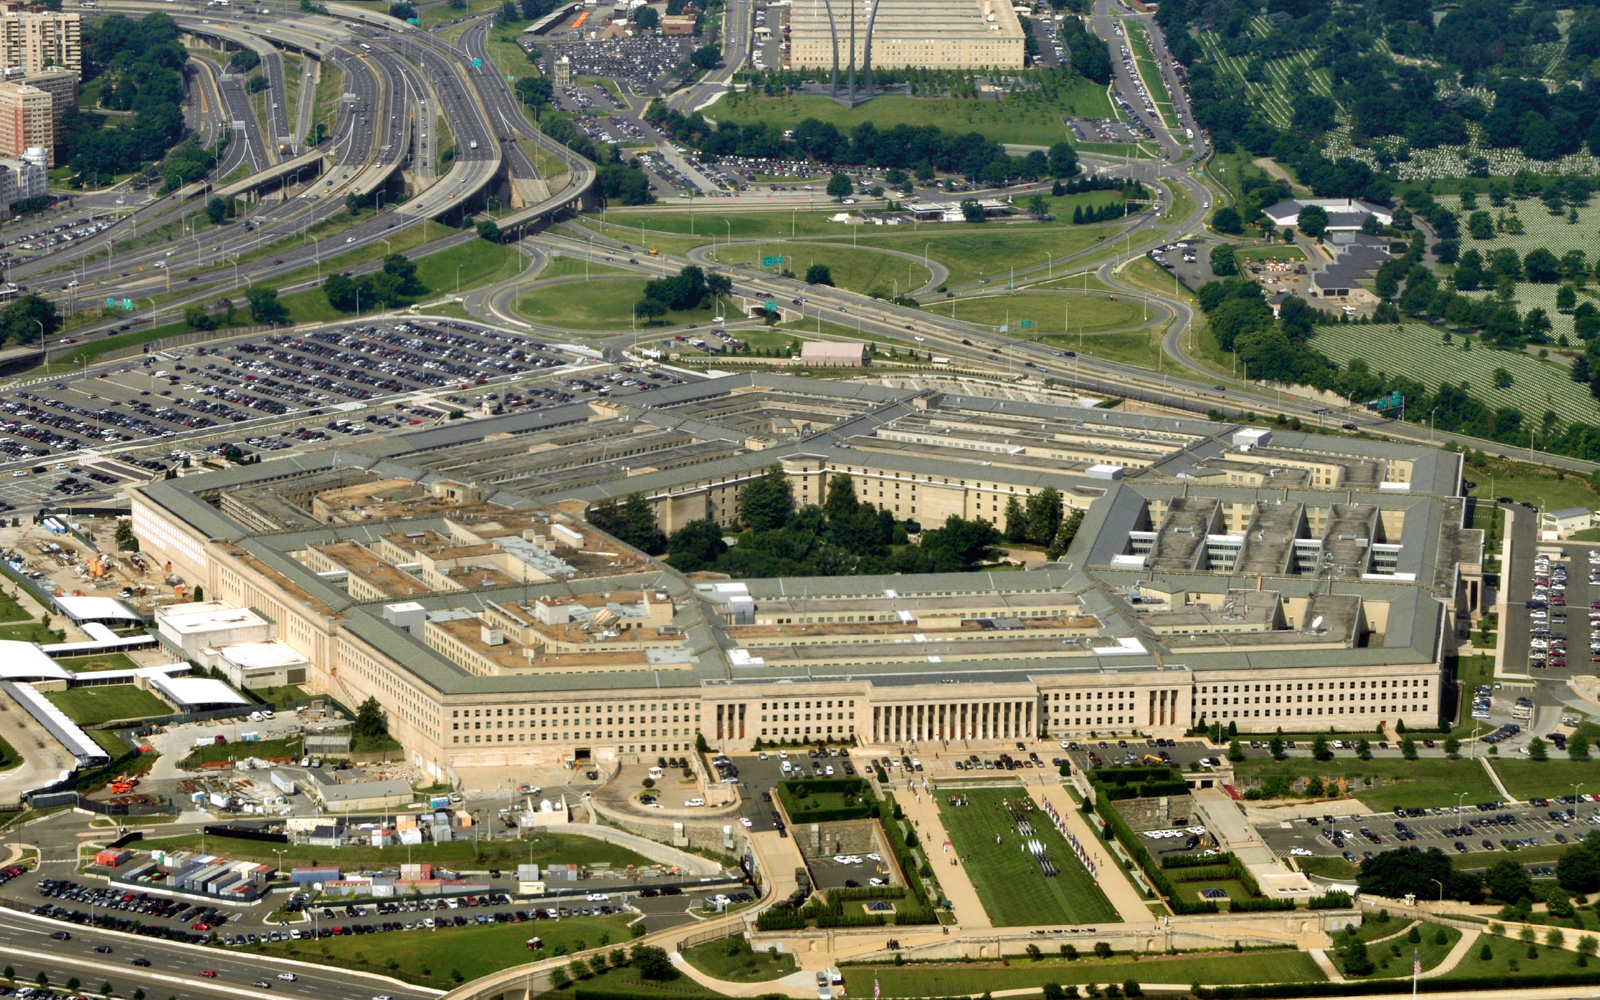 Aerial view of Pentagon building